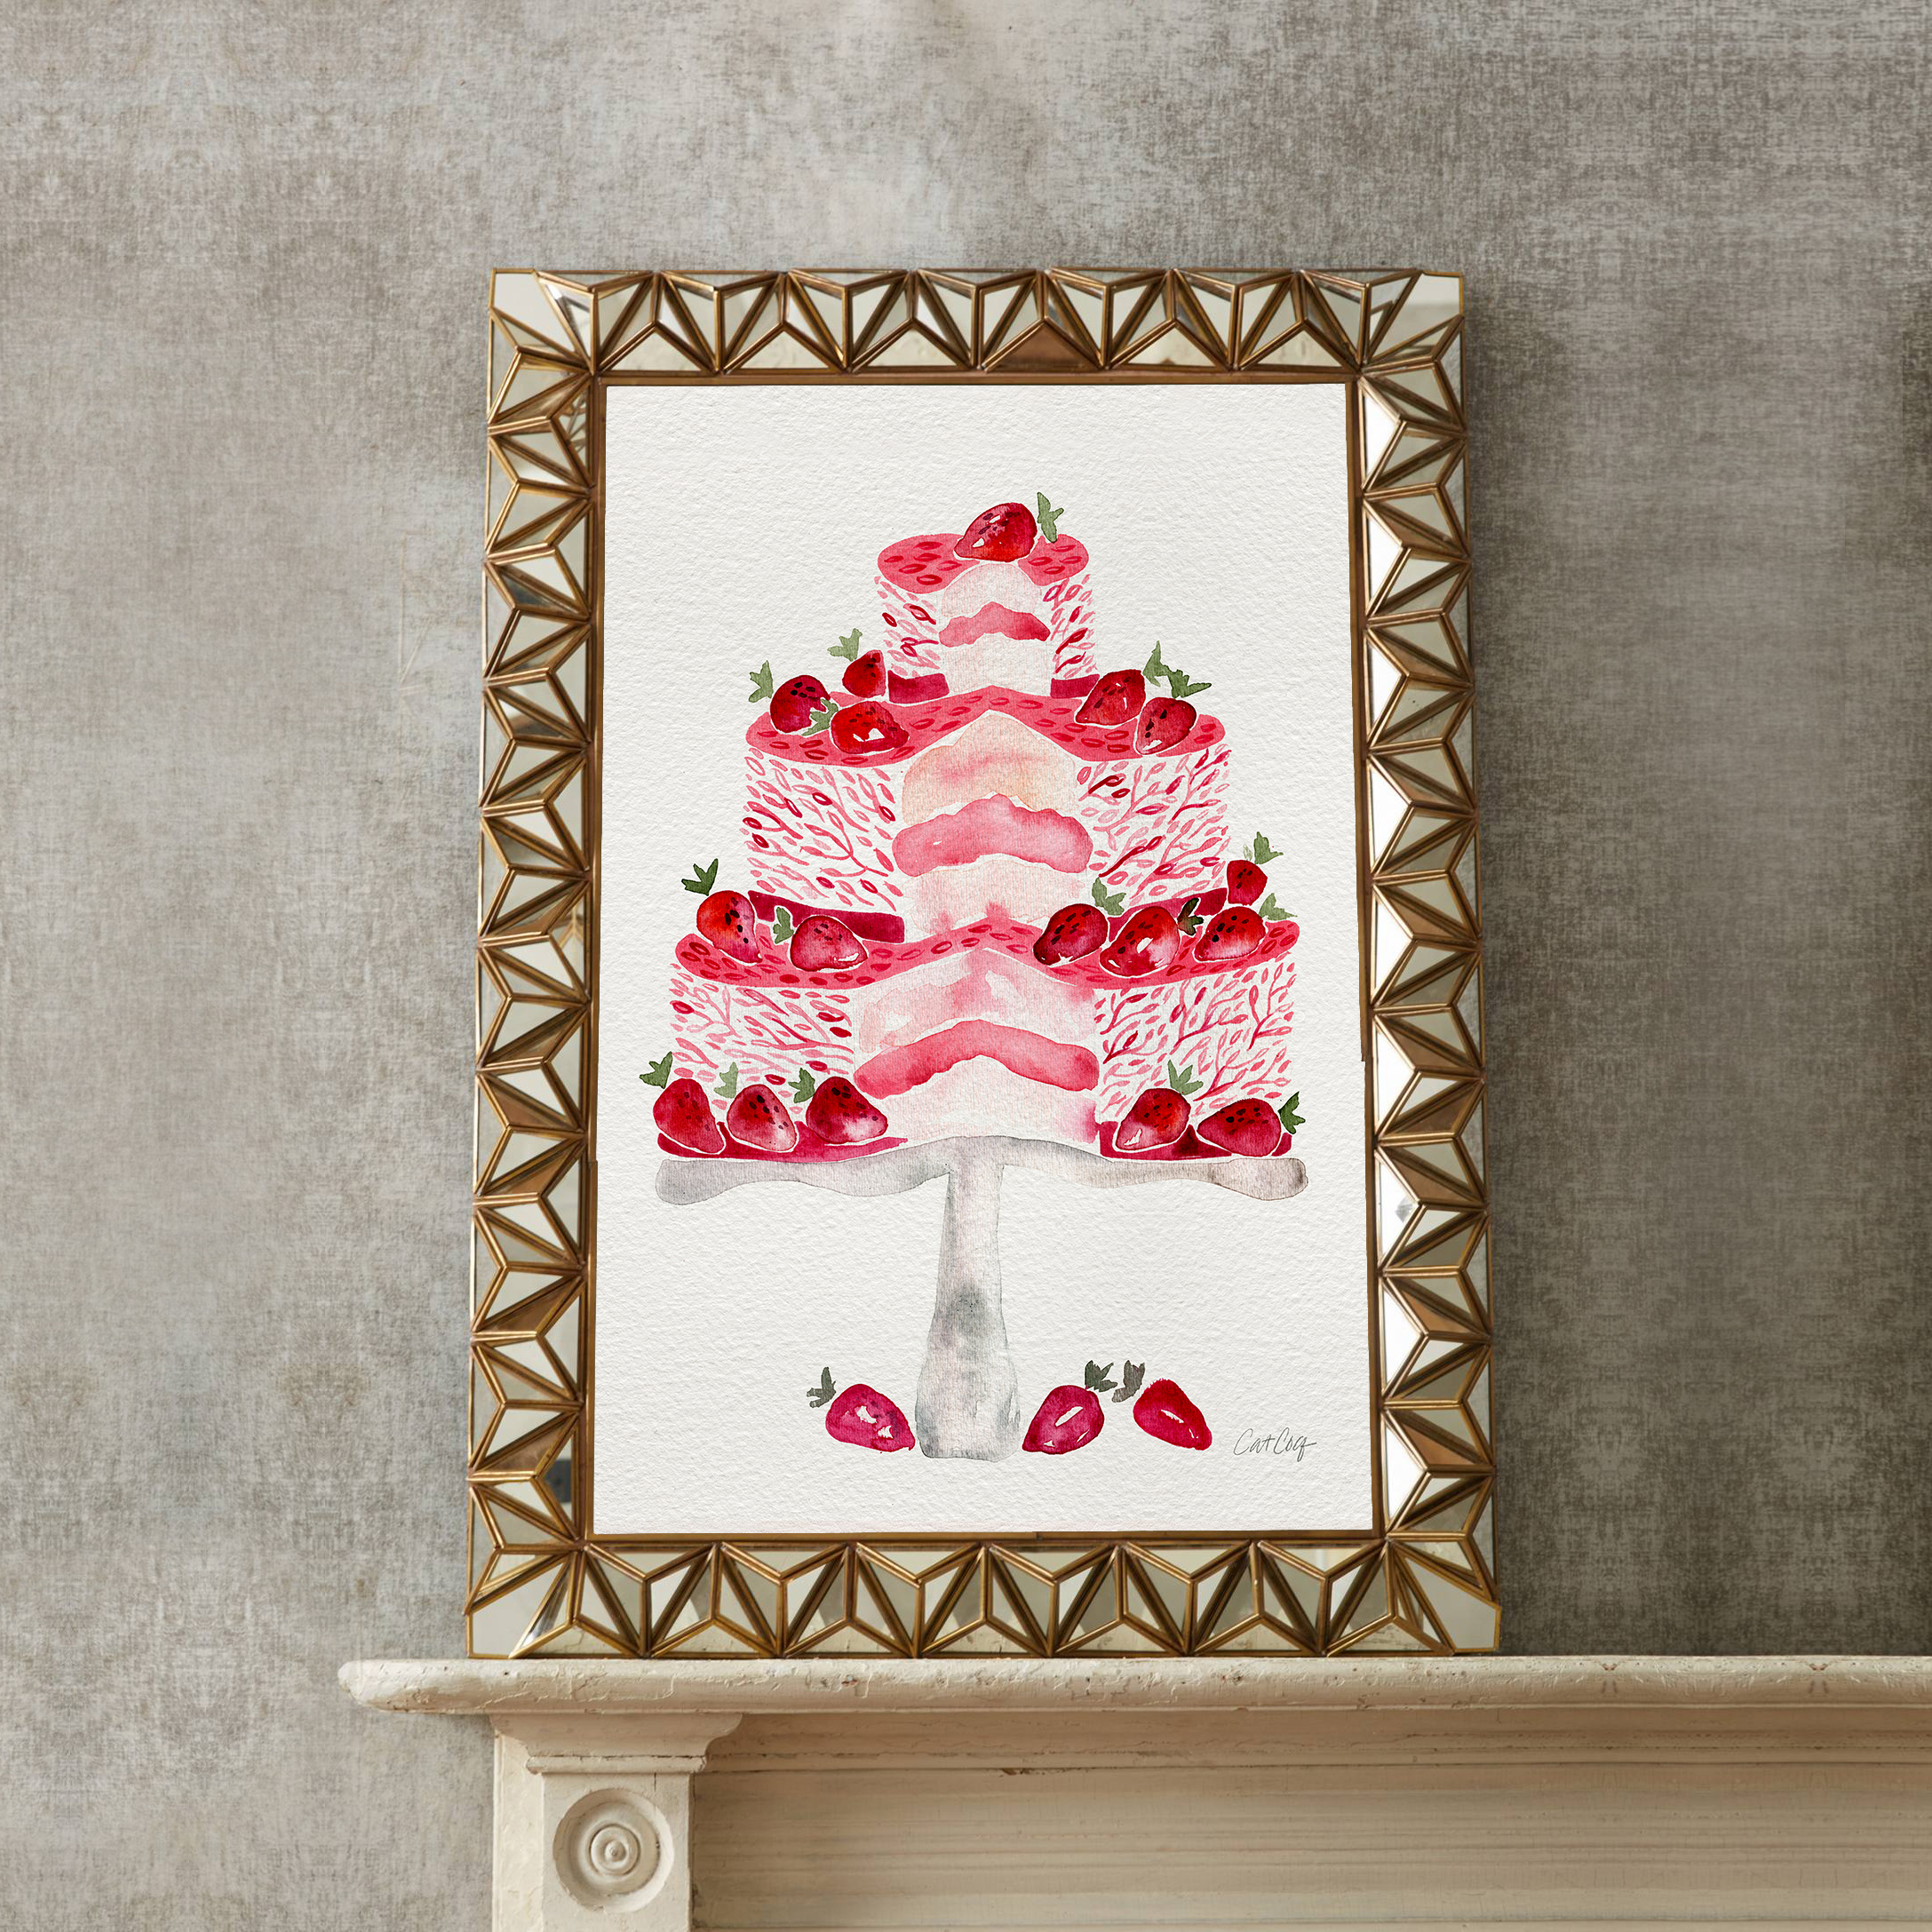 Strawberry Shortcake art print available  here .